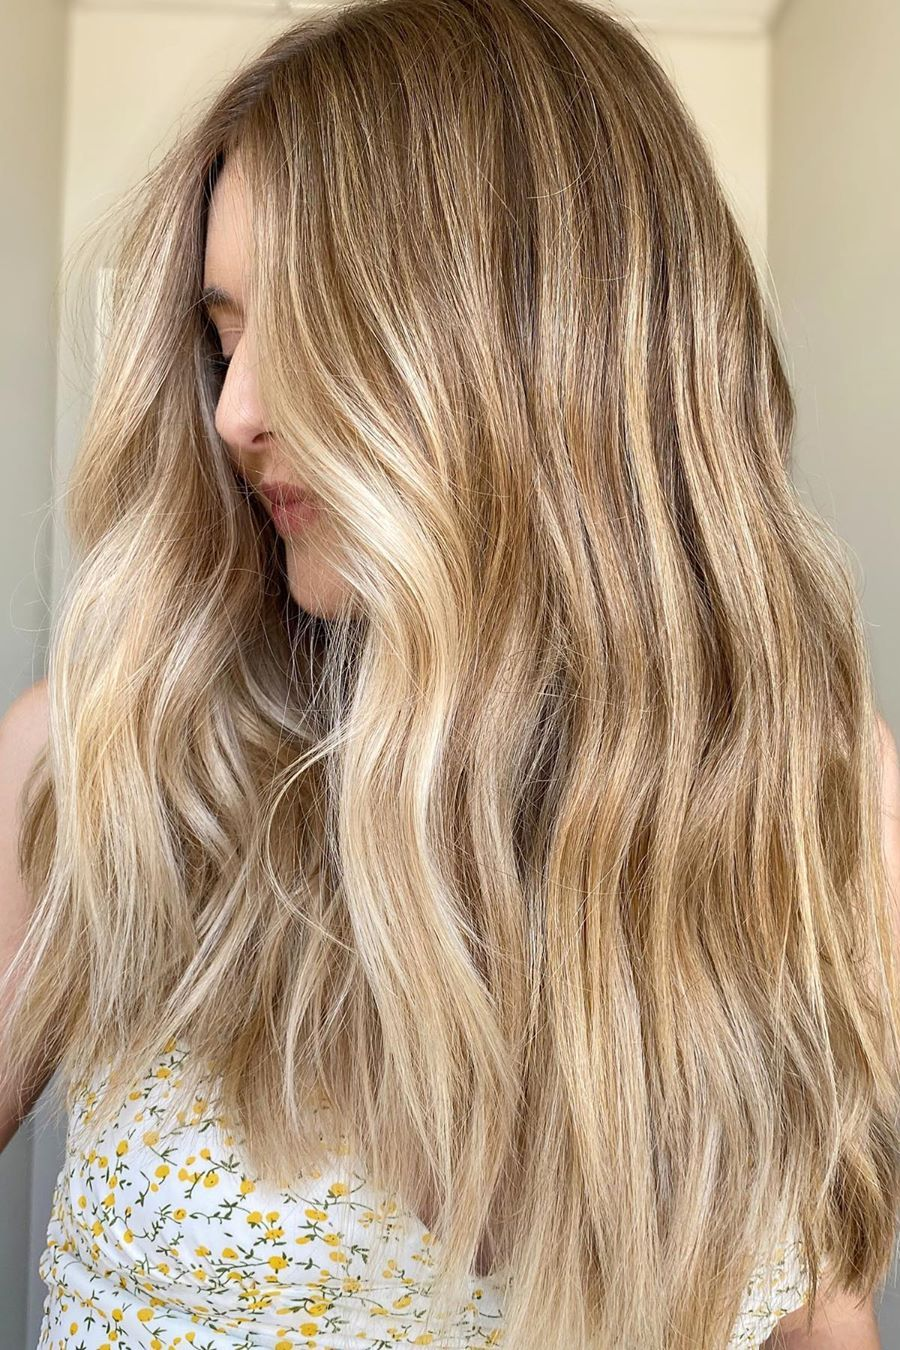 21 Ways To Change Your Hair With Beauty Hairstyles Hairstylefun Com In 2020 Hair Styles Medium Hair Styles Hair Beauty